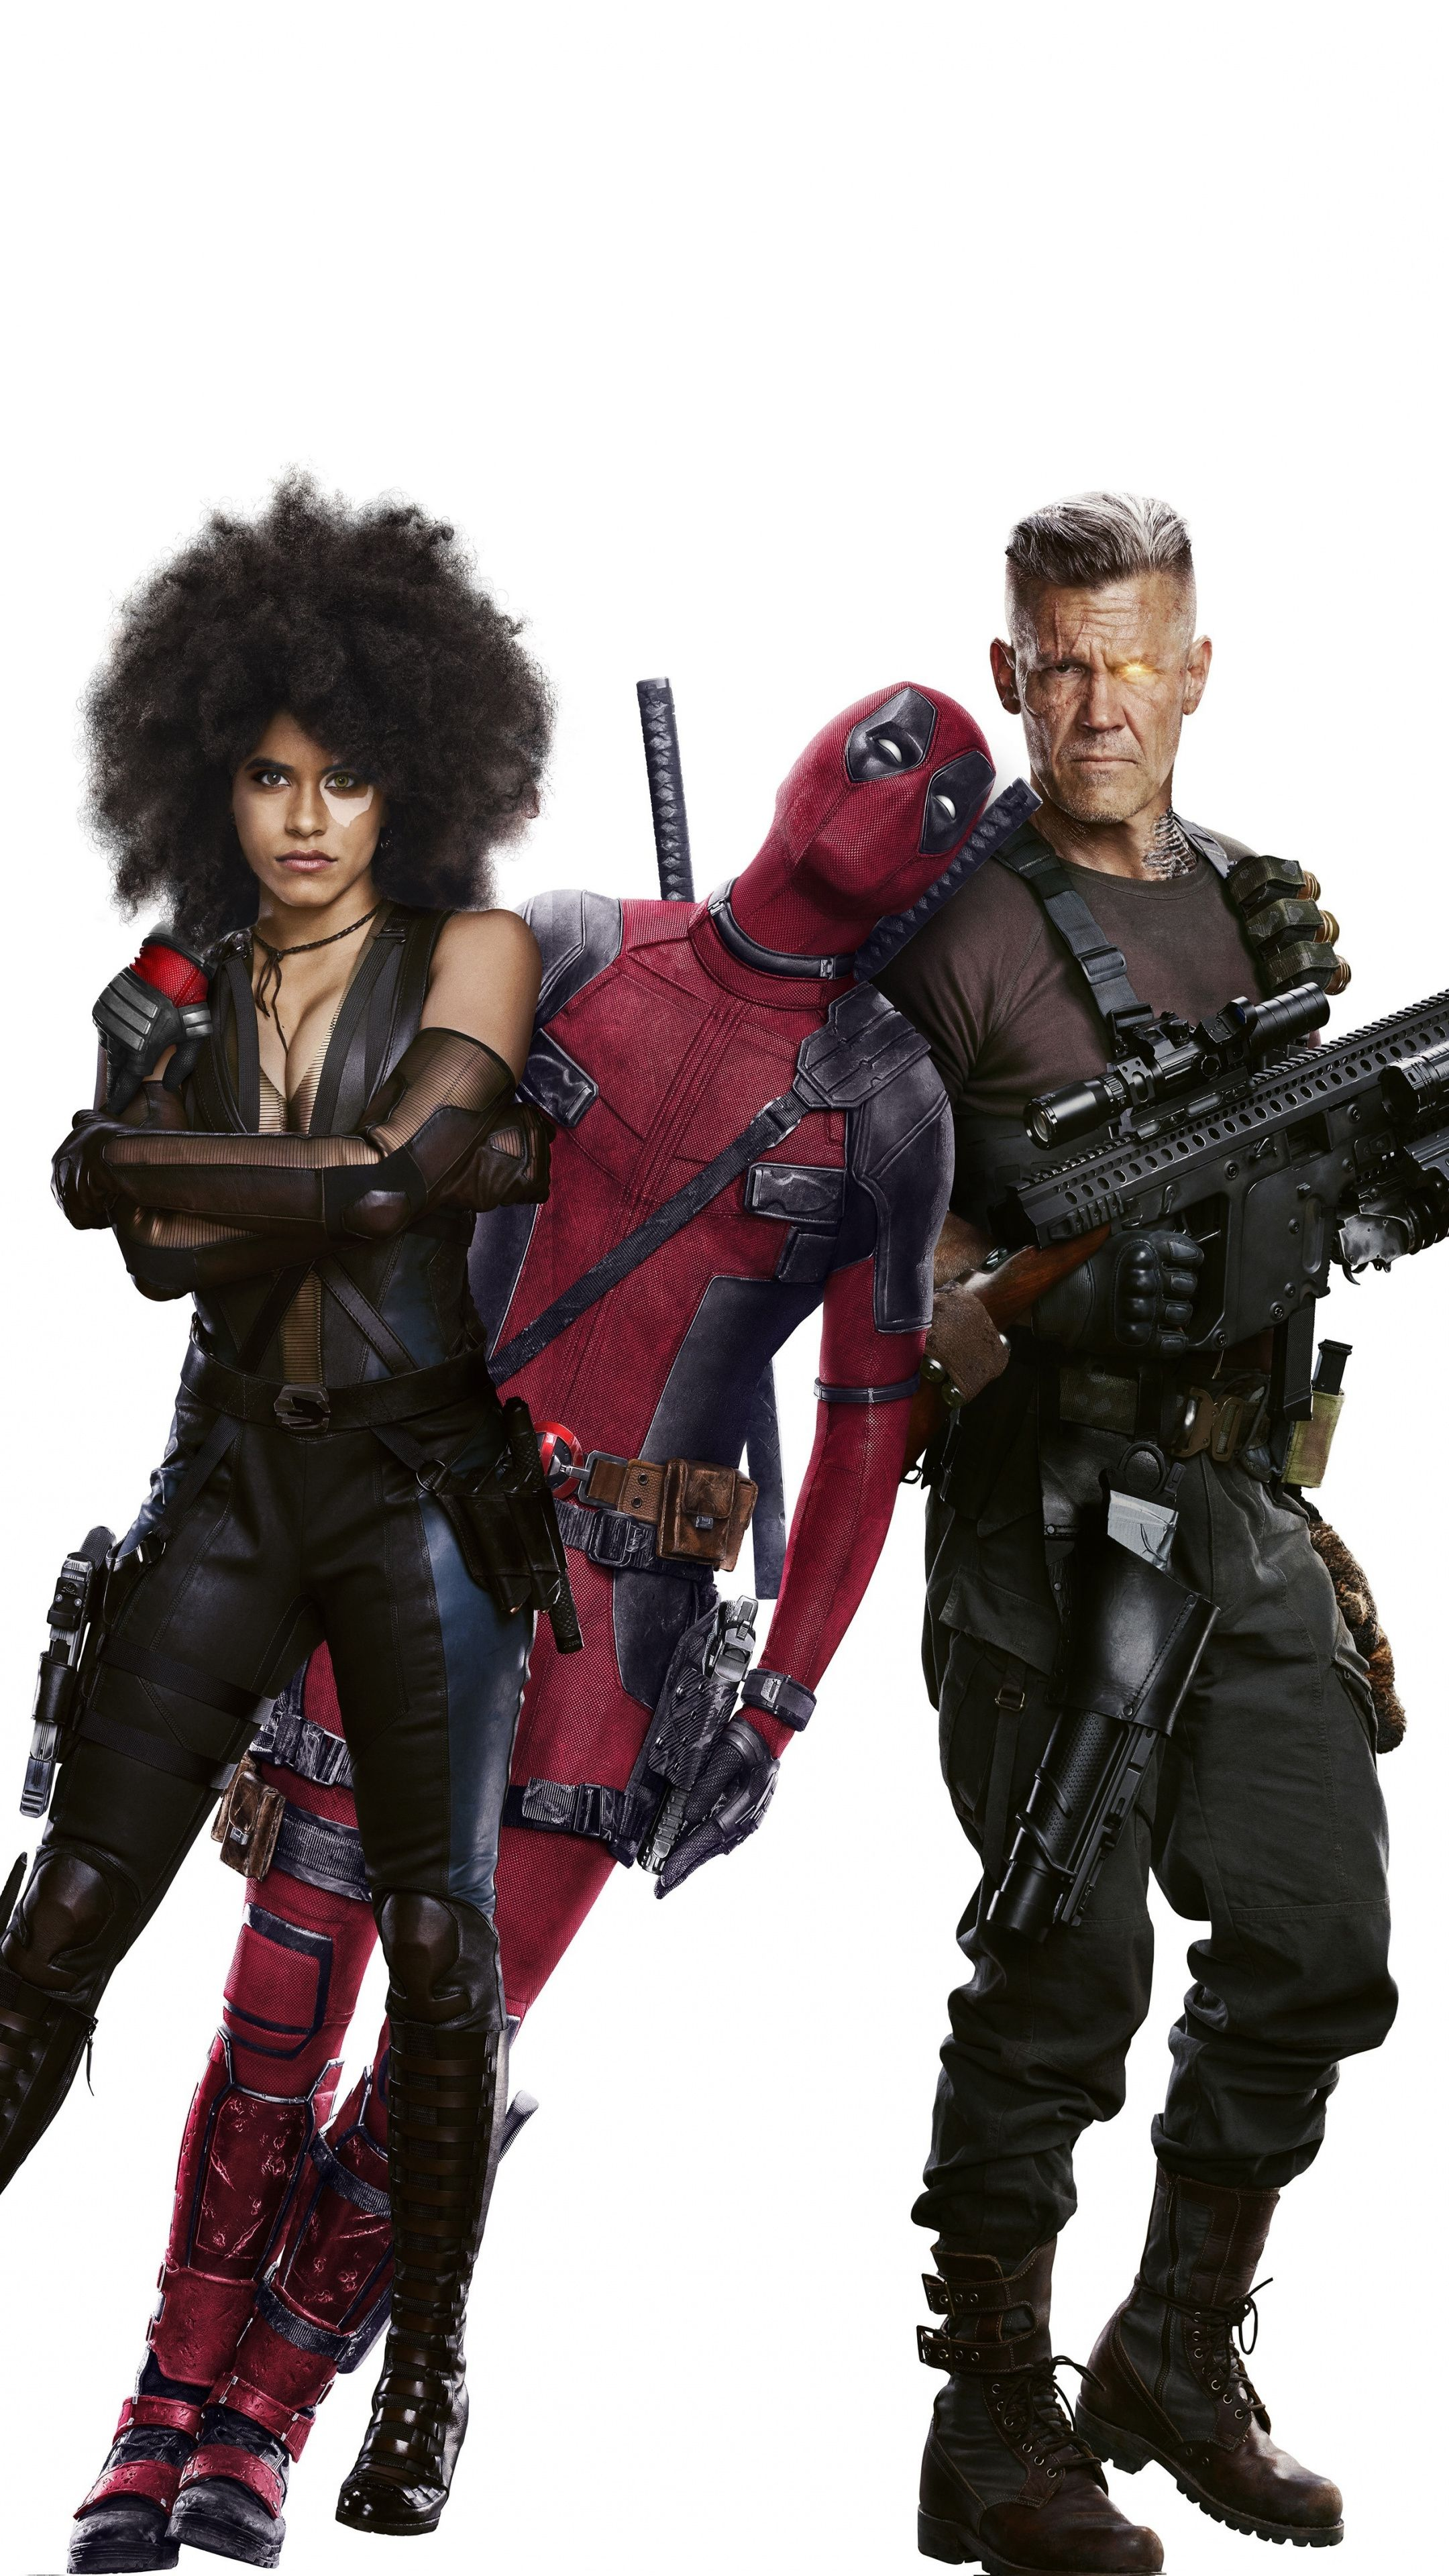 Download 2160x3840 Wallpaper Deadpool 2 Cable Movie Poster 2018